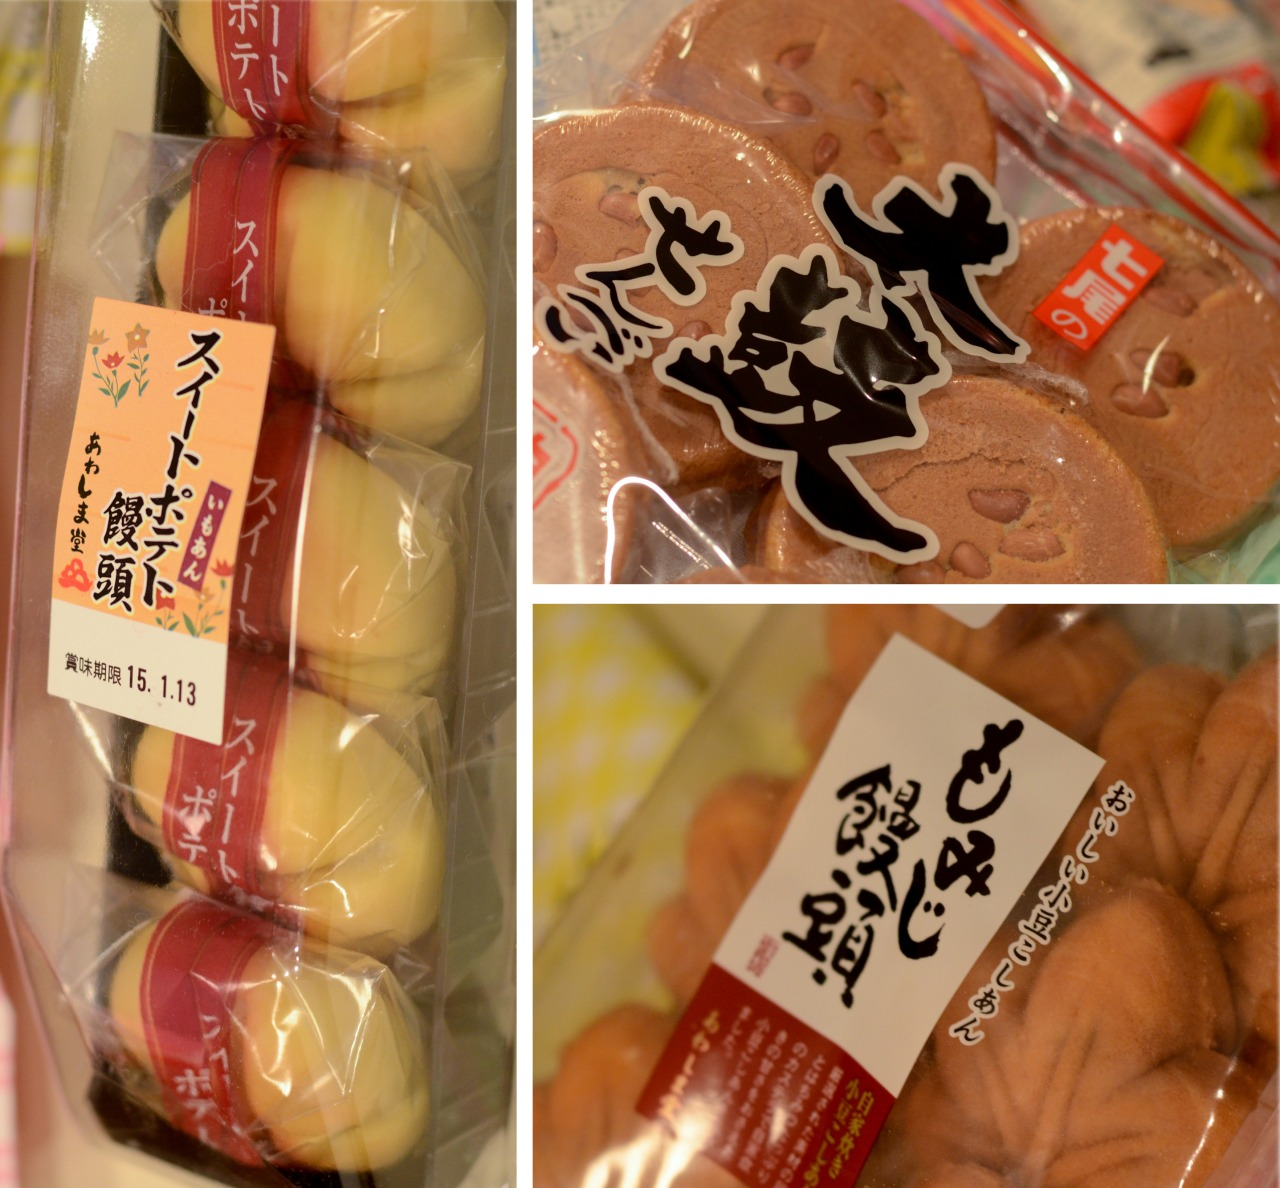 The Teruya-Roziers know me sooo well. My favorite Japanese treats!